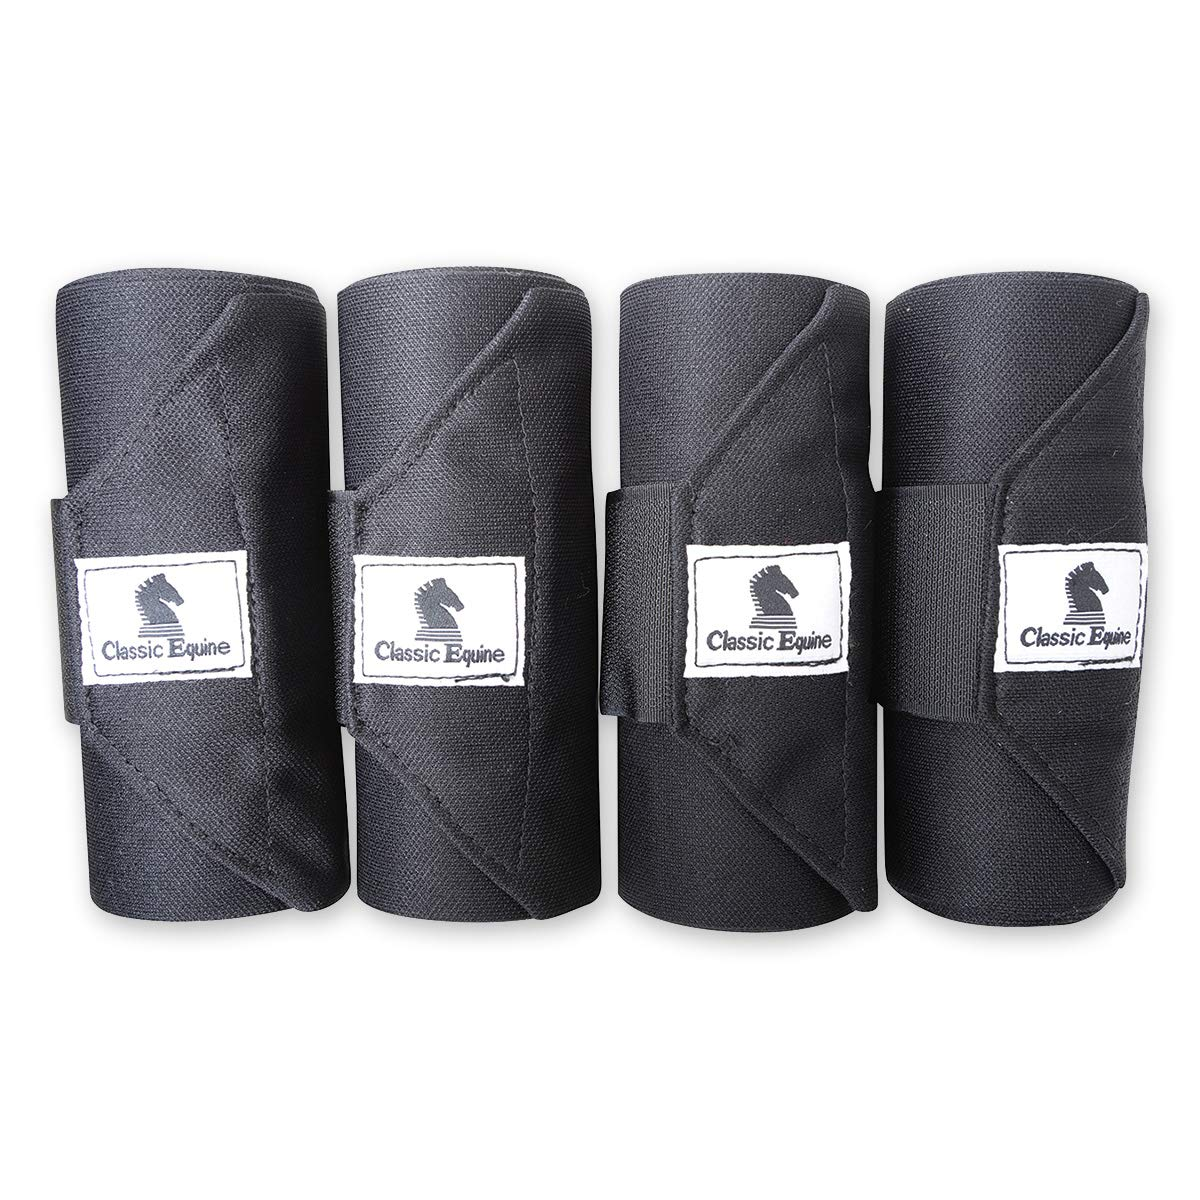 Classic Equine Standing Wrap Bandages by Classic Equine